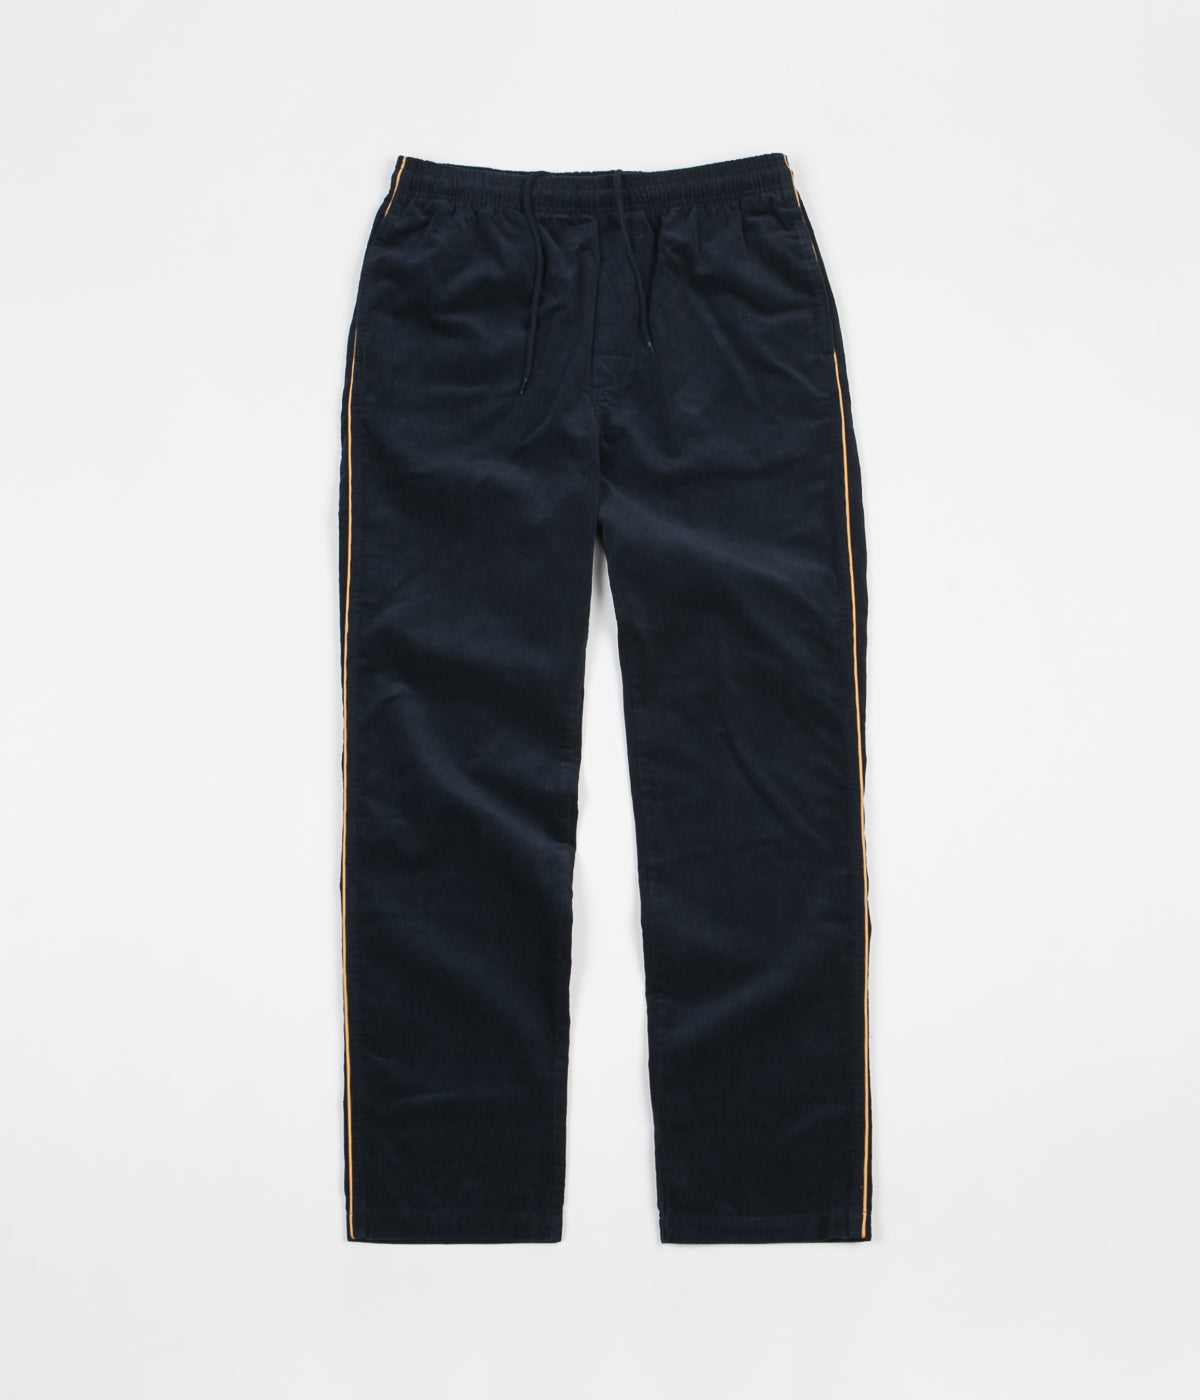 Stussy Side Piping Cord Trousers - Navy